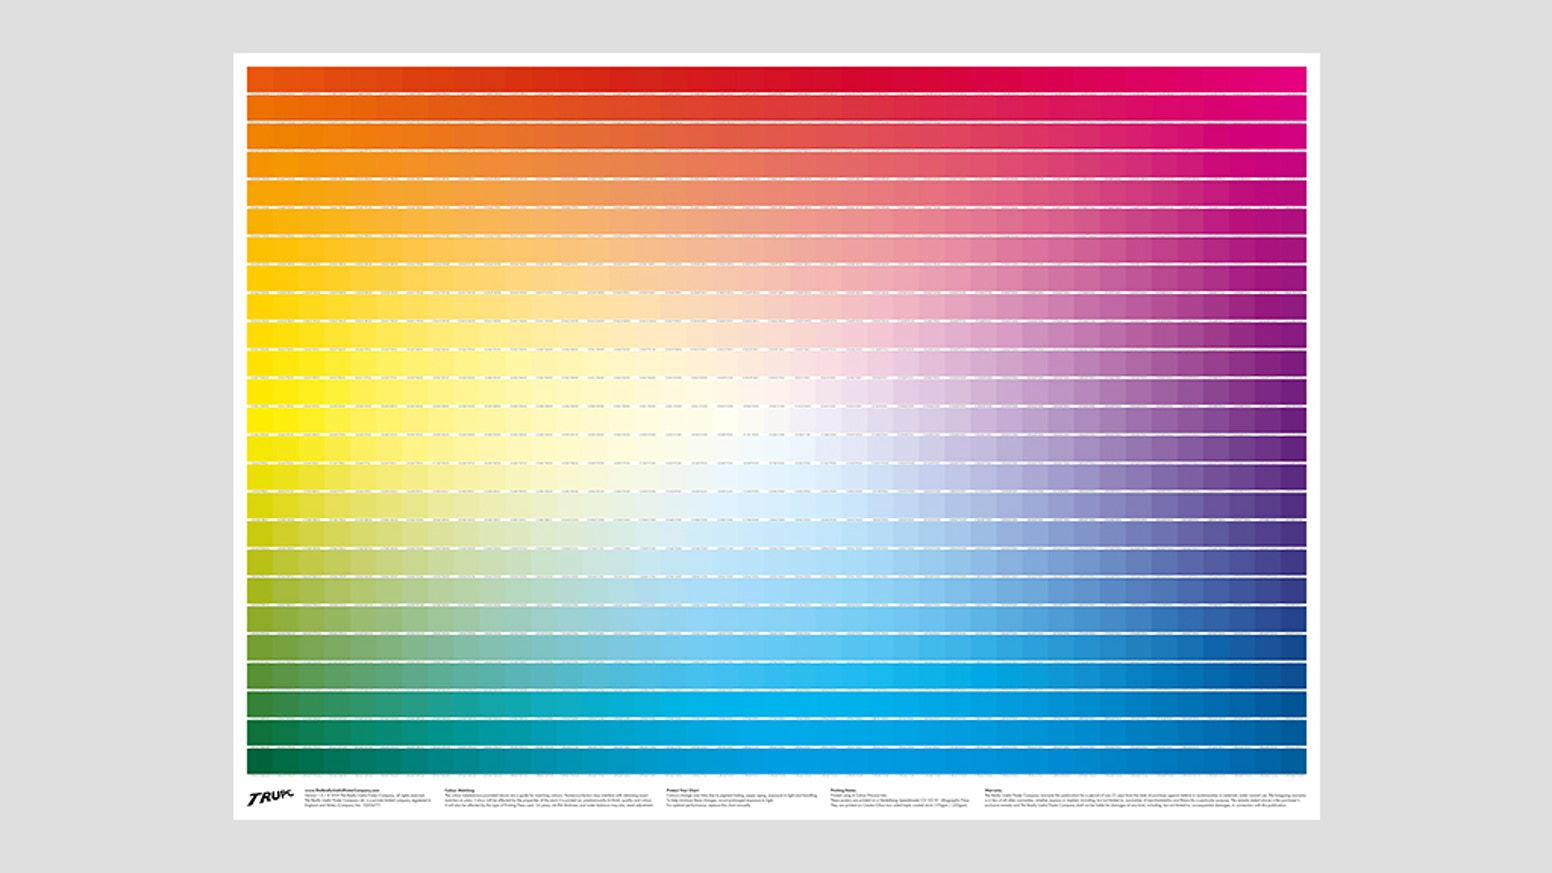 The Really Useful CMYK Colour Chart displays 1025 unique colour swatches and their 4-colour (CMYK) breakdowns, on 1 convenient poster!